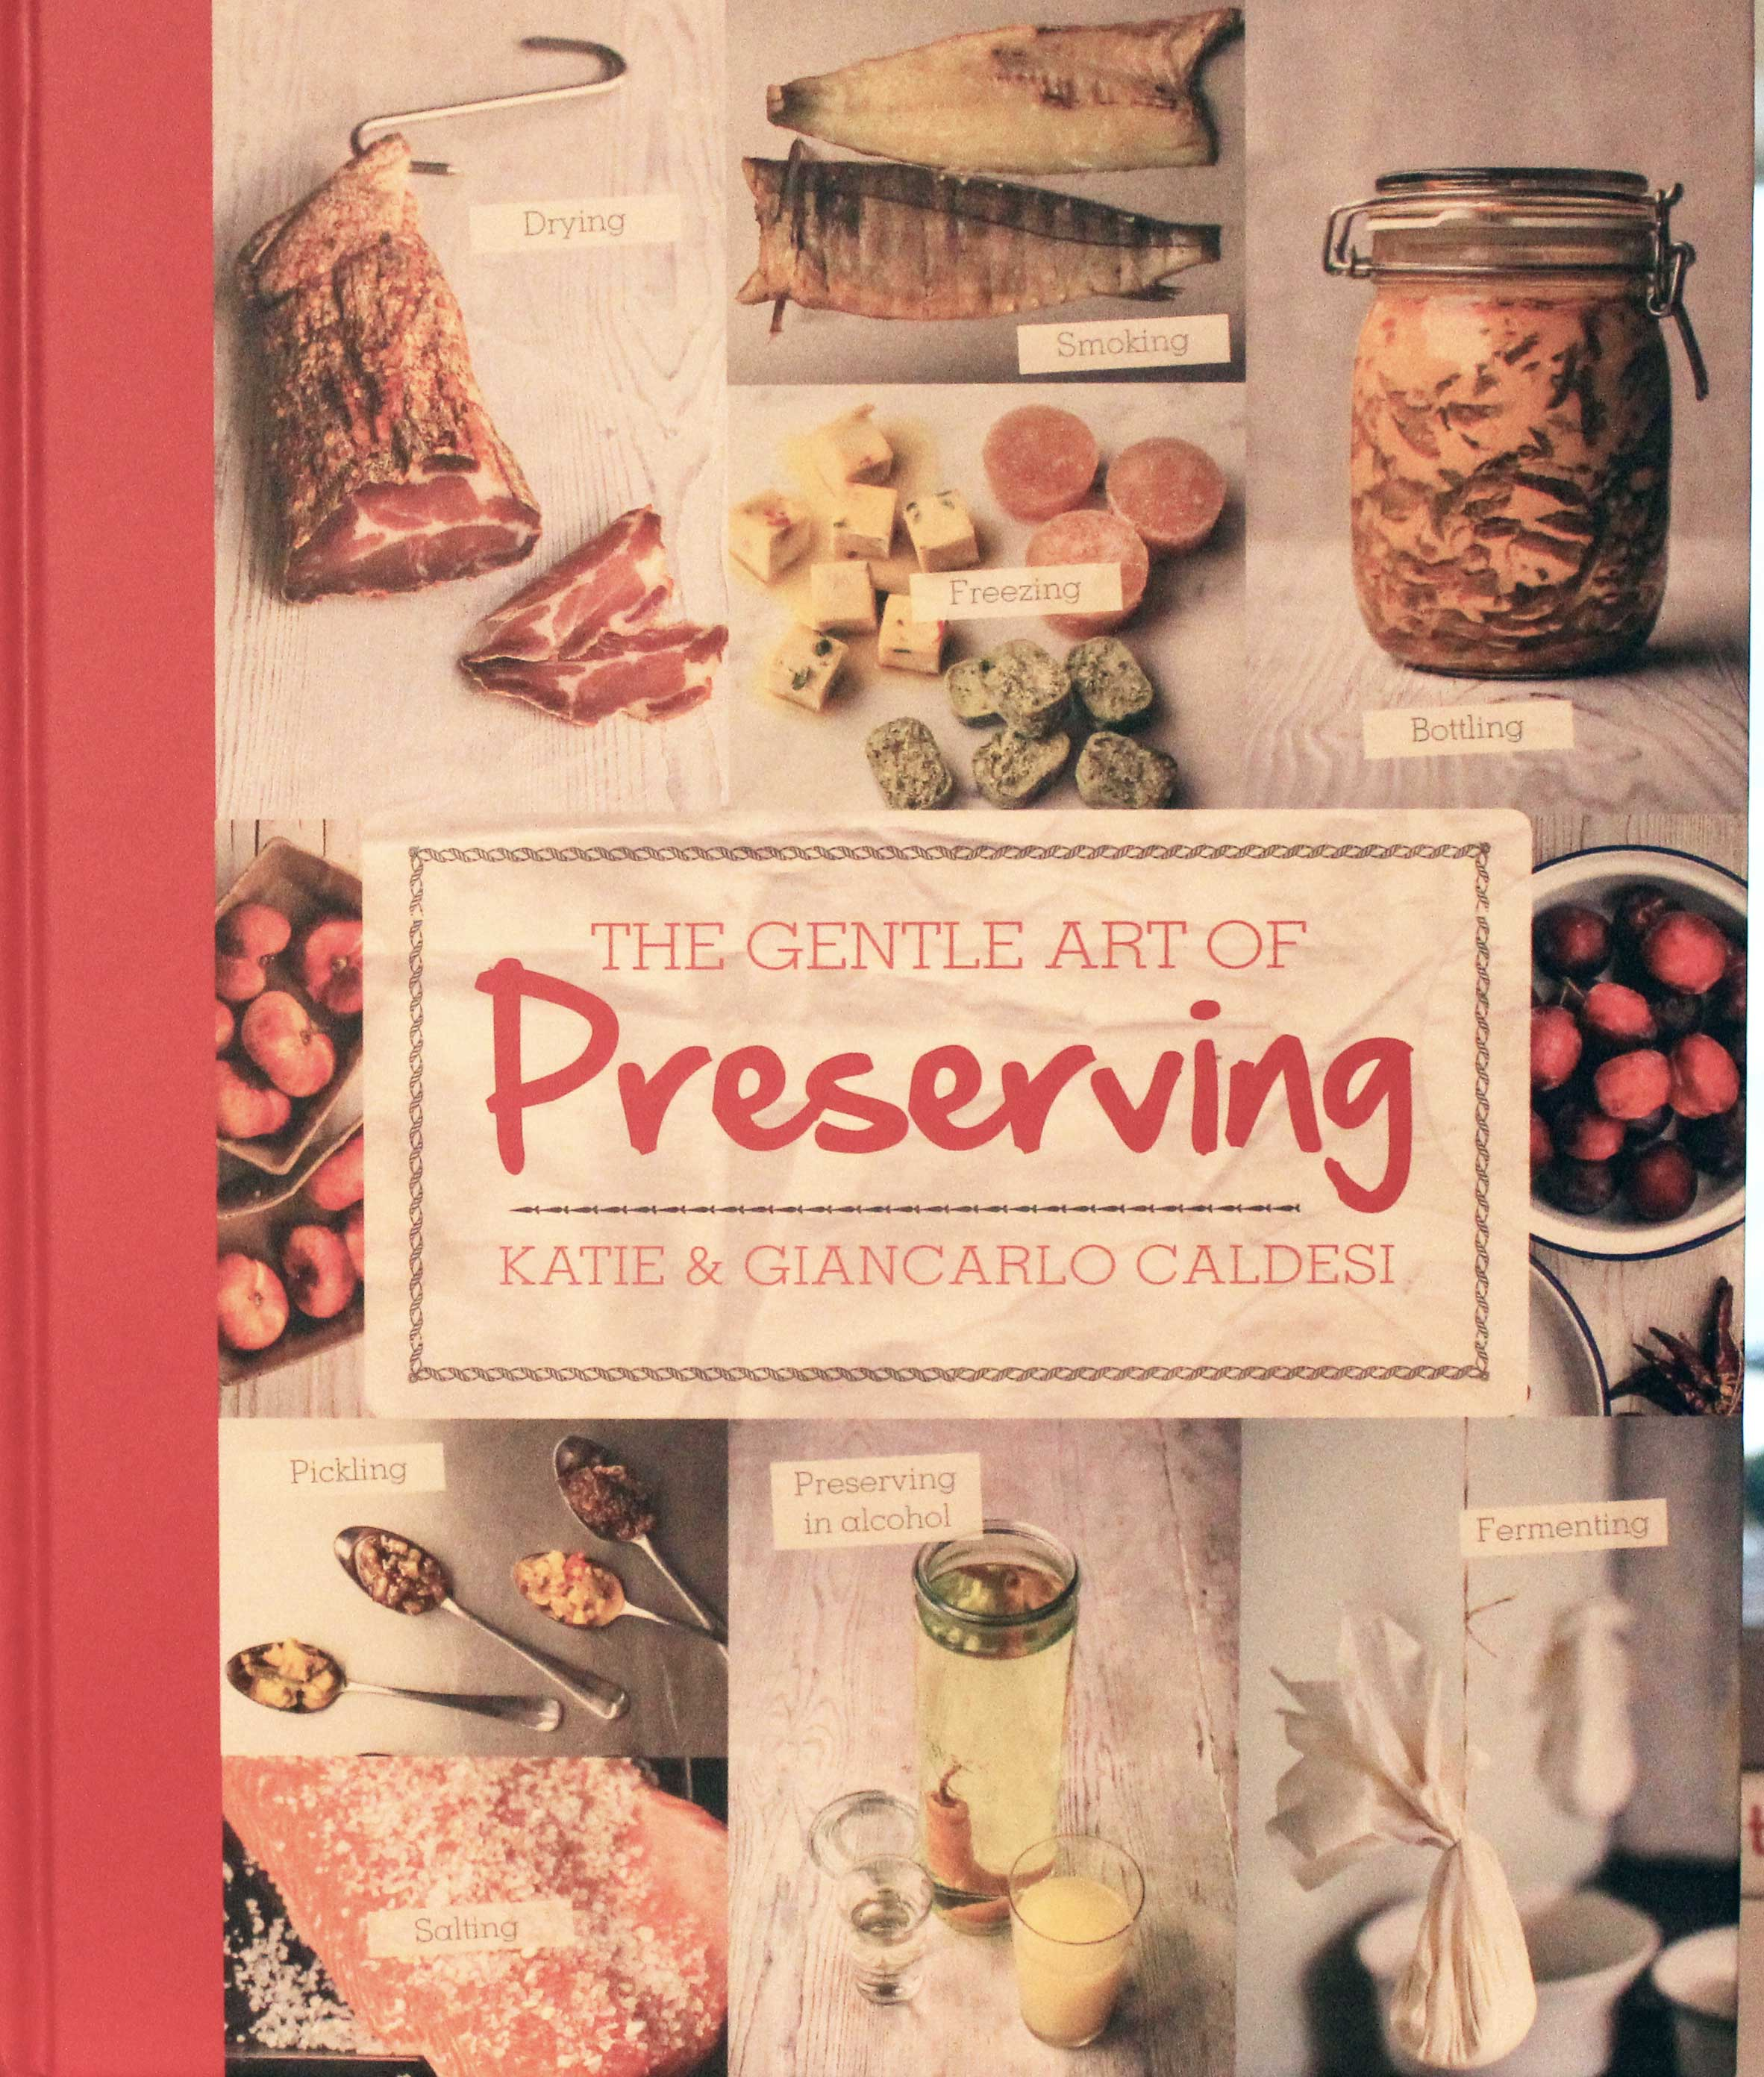 TBT Cookbook Review: The Gentle Art of Preserving